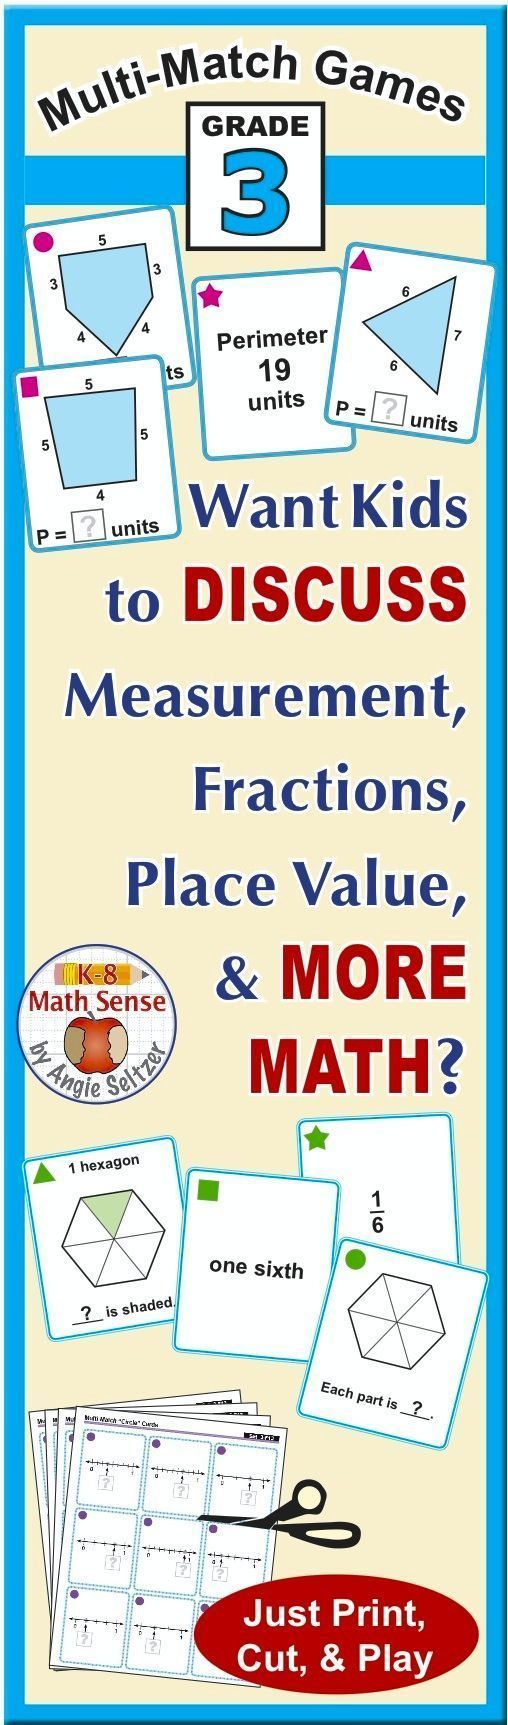 worksheet Fractions Of Shapes best 25 fractions of shapes ideas on pinterest 3d bonus bundle grade 3 multi match math games for common core